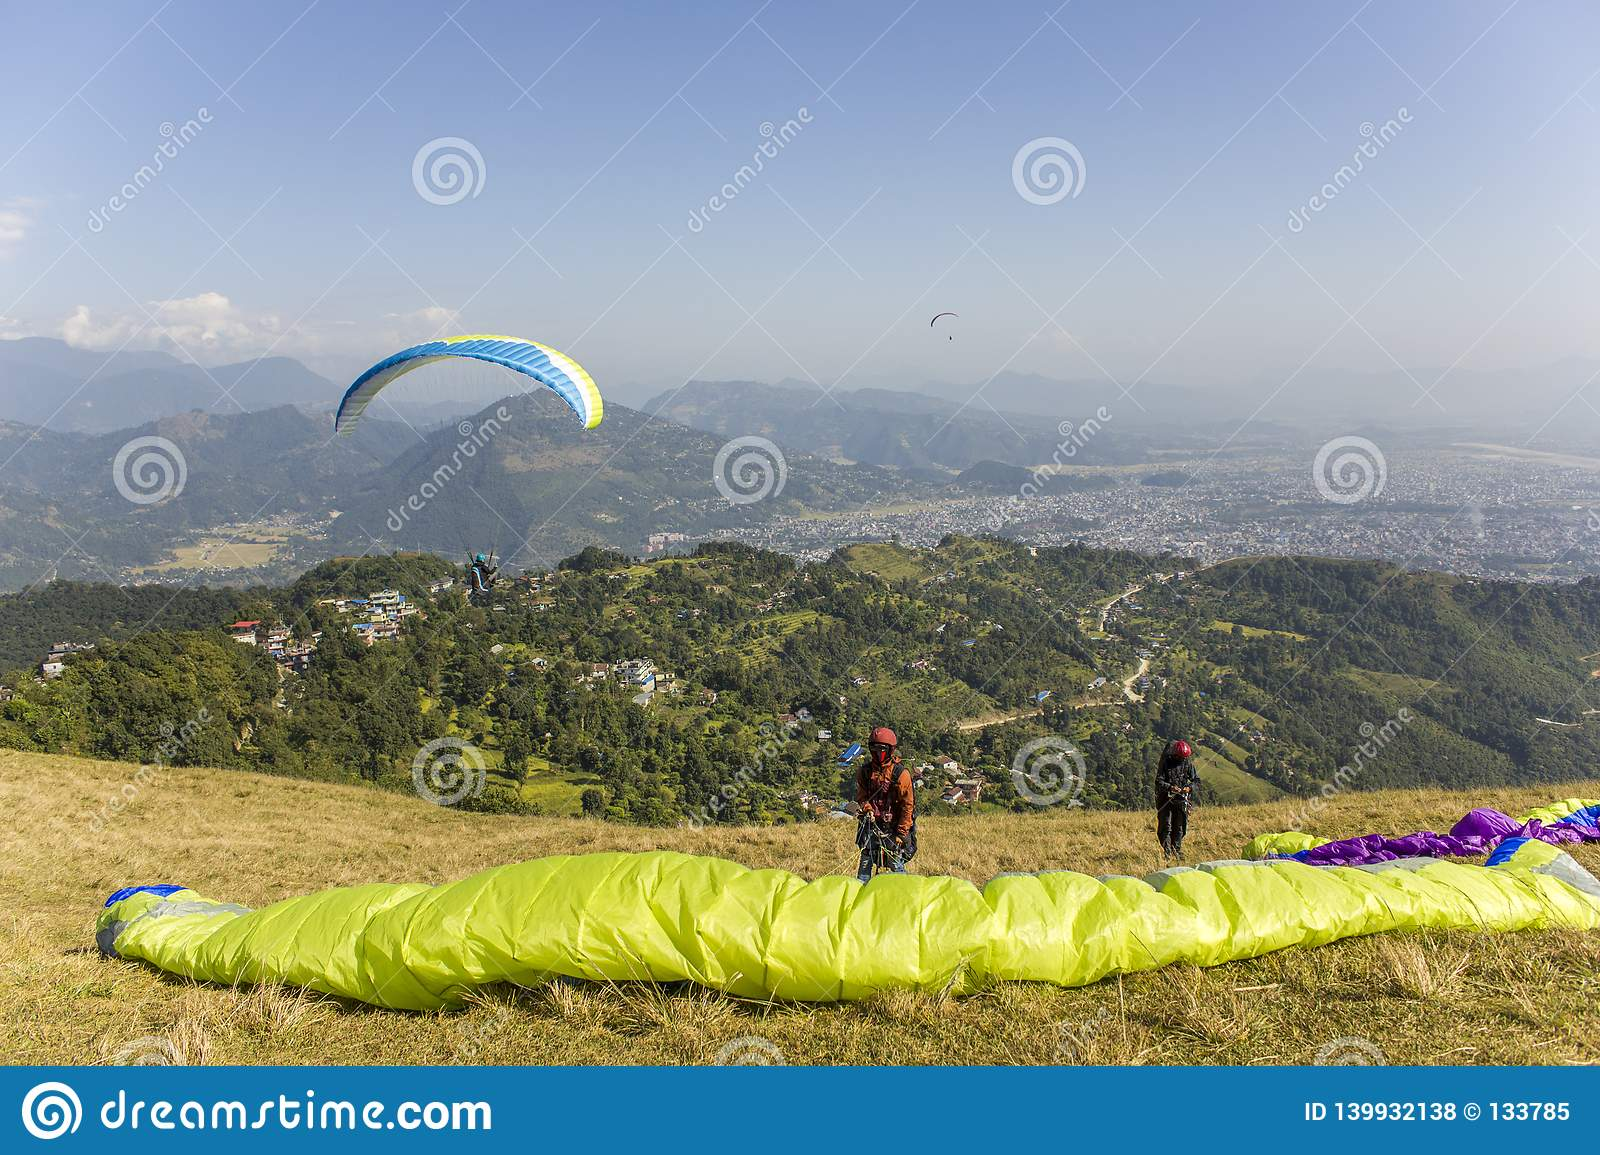 Two paragliders on the hillside before taking off against the backdrop of a mountain valley and flying